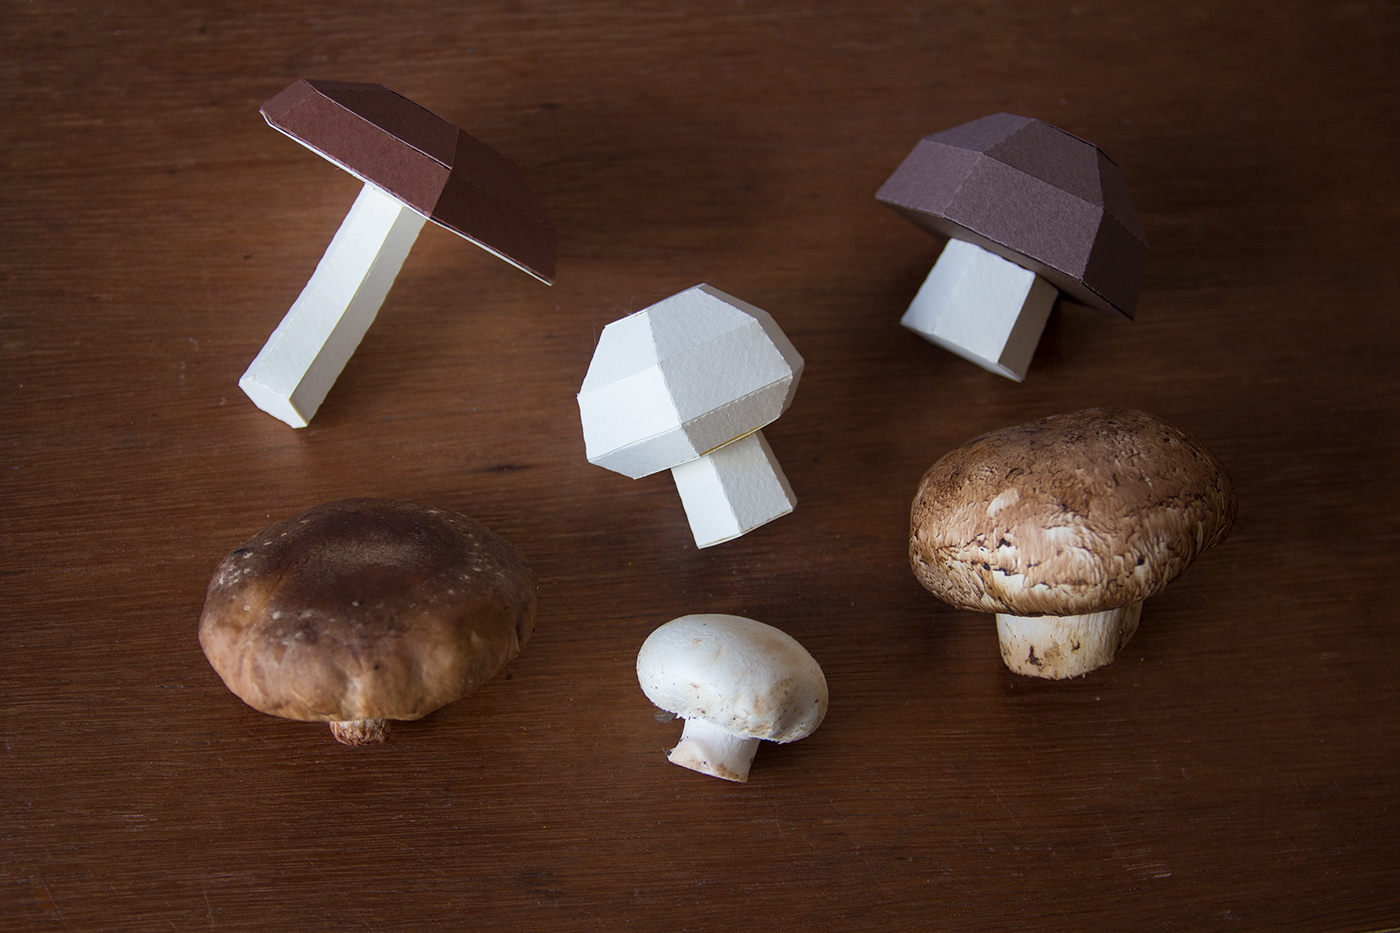 papercraft paperfood Pear radish Mushrooms nardalepes guardabosques lowpoly paperkits DIY